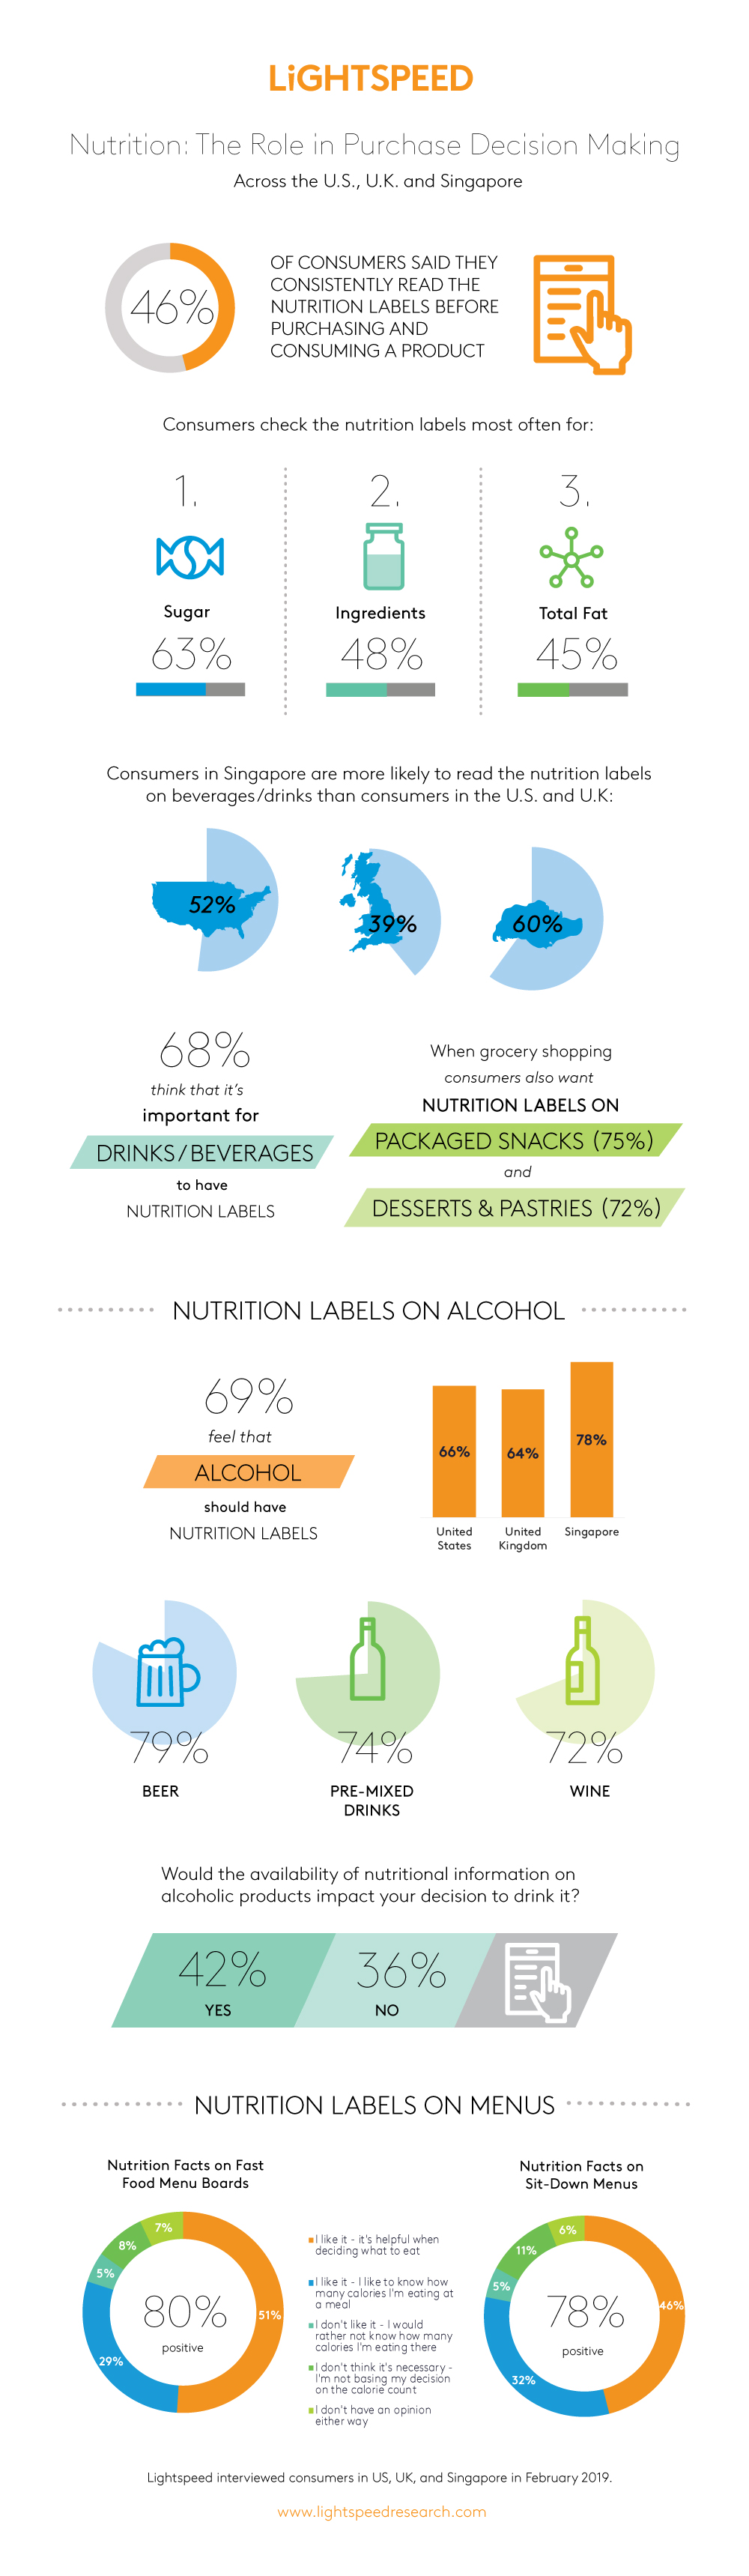 Lightspeed_NutritionLabels_Infographic_2019